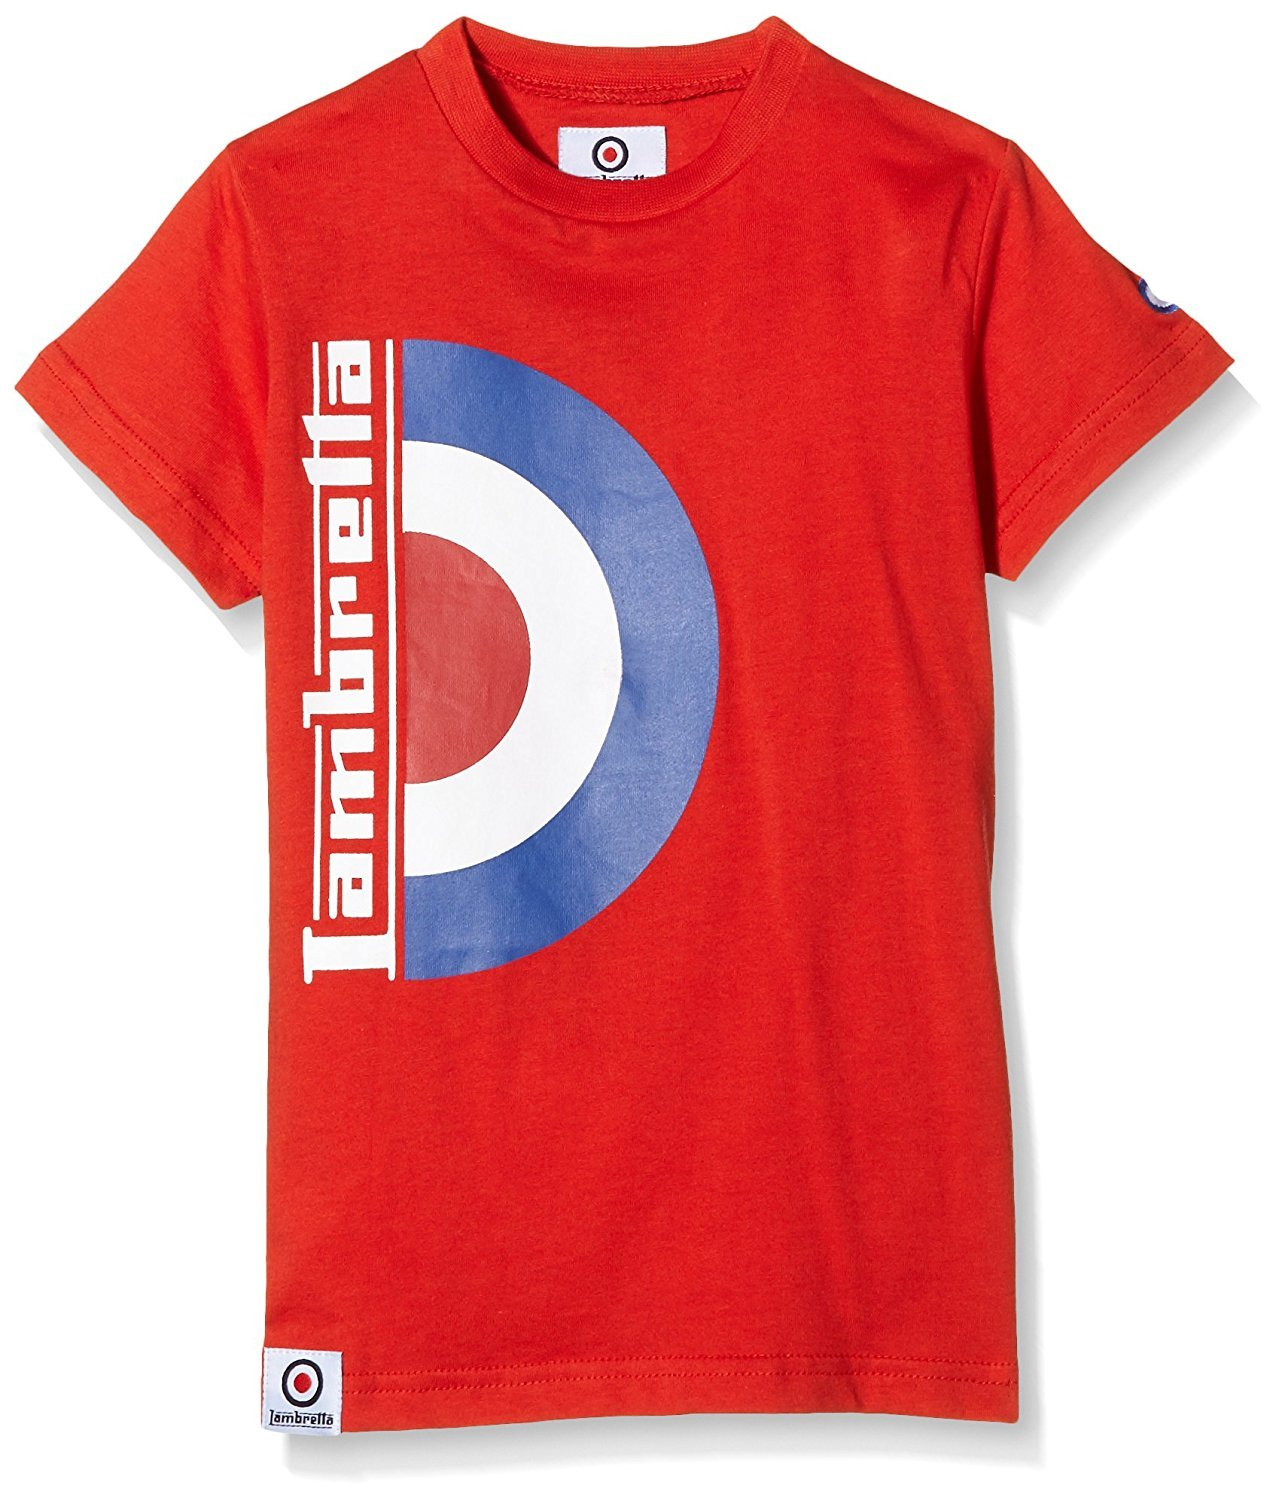 Lambretta Boy's Half Tee T-Shirt Red - Stockpoint Apparel Outlet